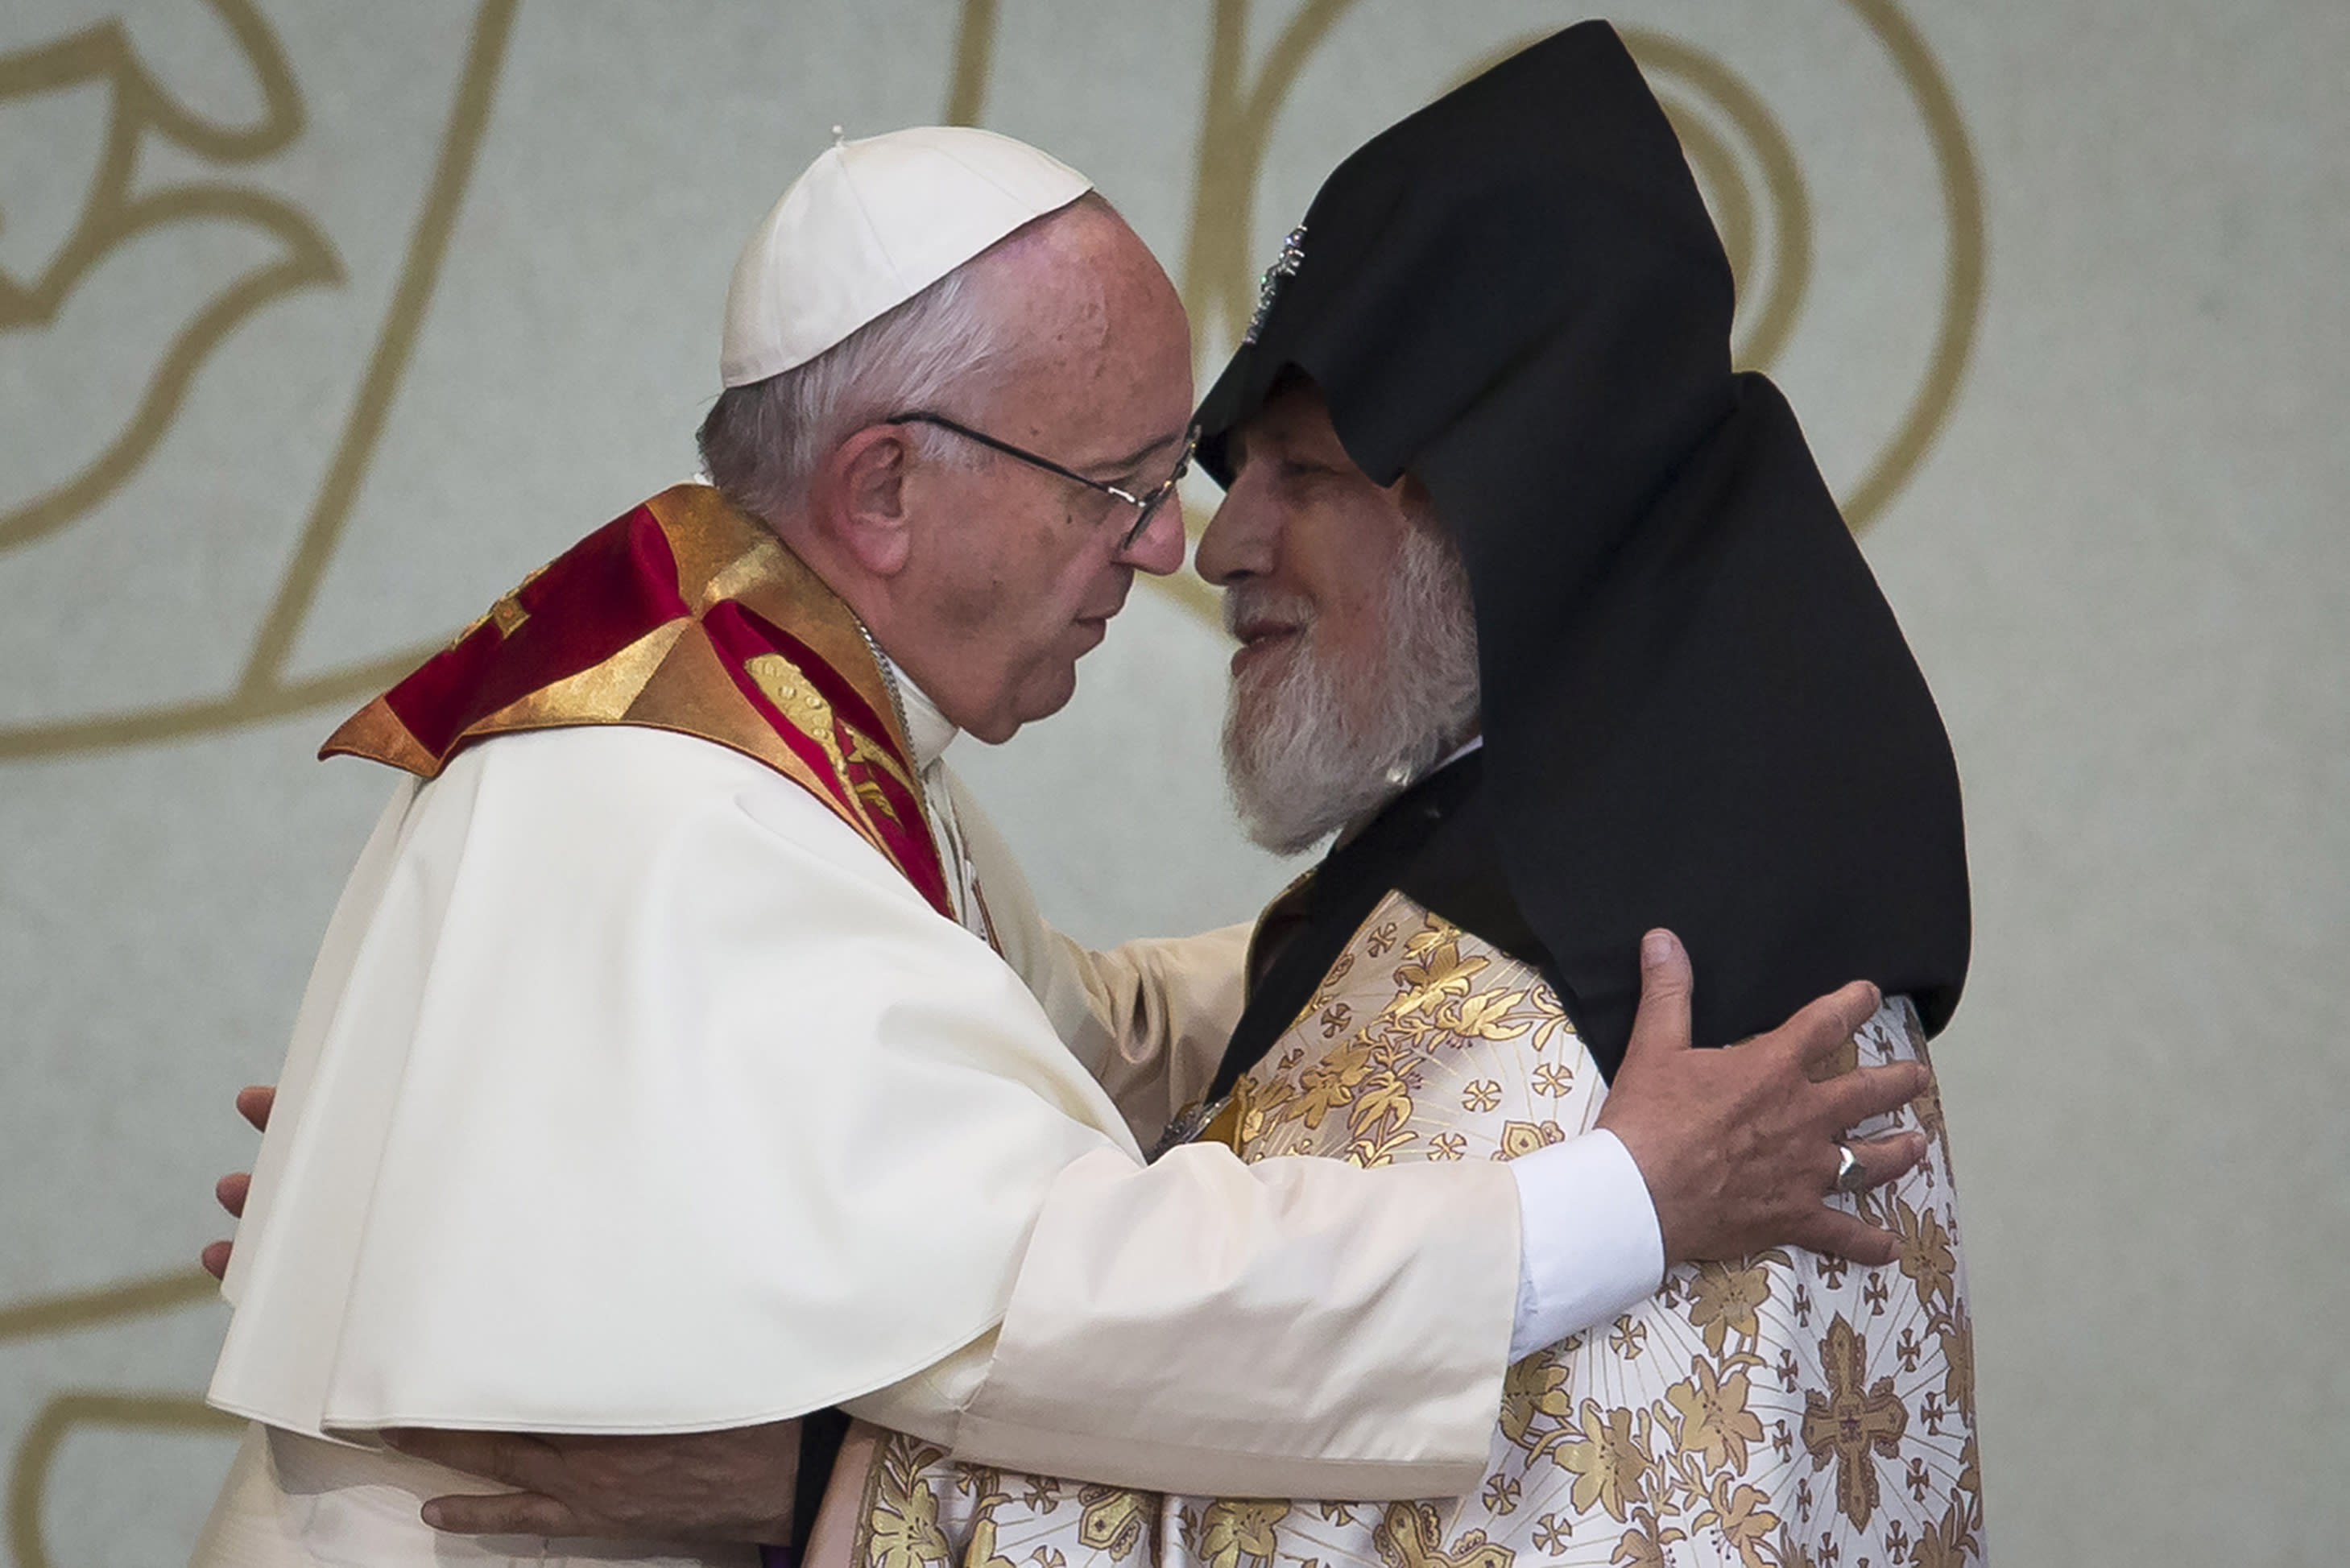 Vatican denies pope has 'Crusades' mentality over genocide